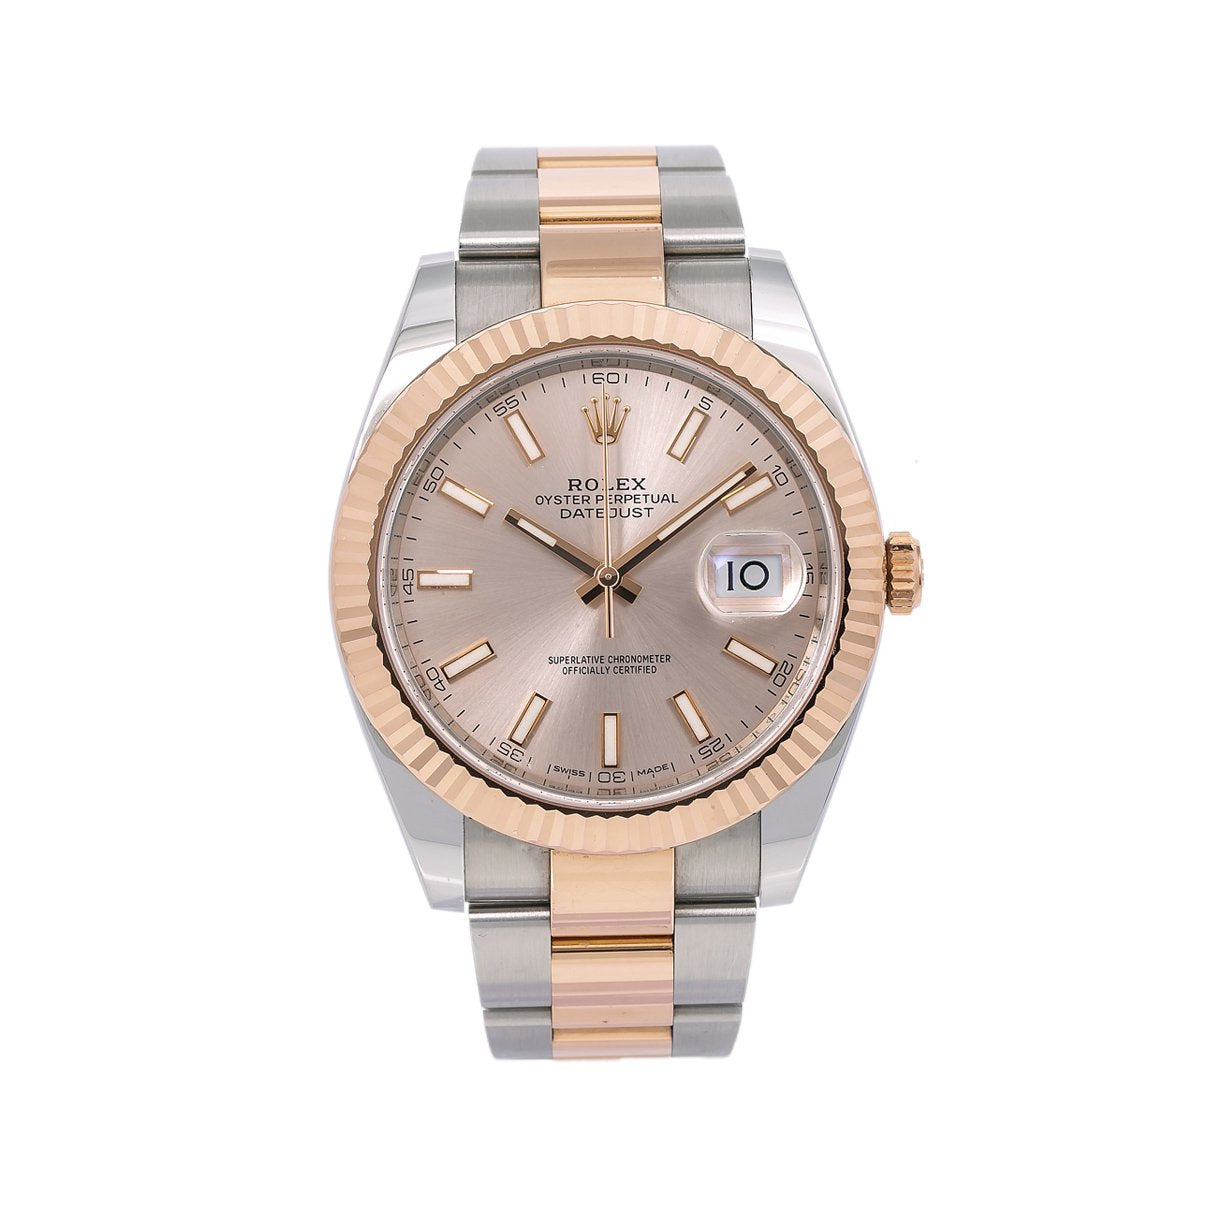 Rolex Datejust II 126331 41MM Pink Dial With Two Tone Oyster Bracelet